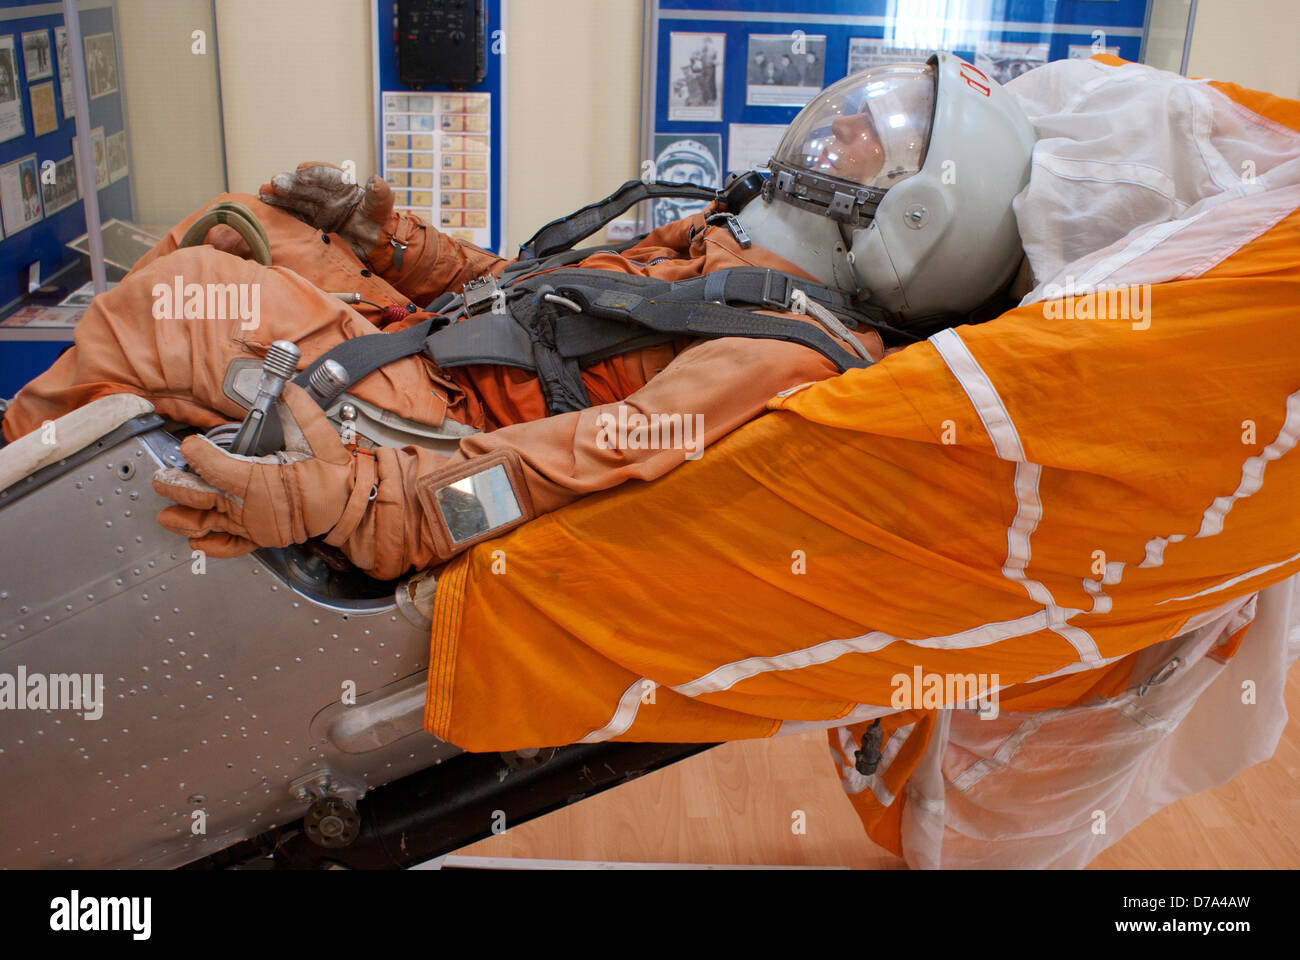 Vostok Space Suit type worn by Yuri Gagarin posed in ejection seat in museum Baikonur Space Museum Baikonur Cosmodrome - Stock Image